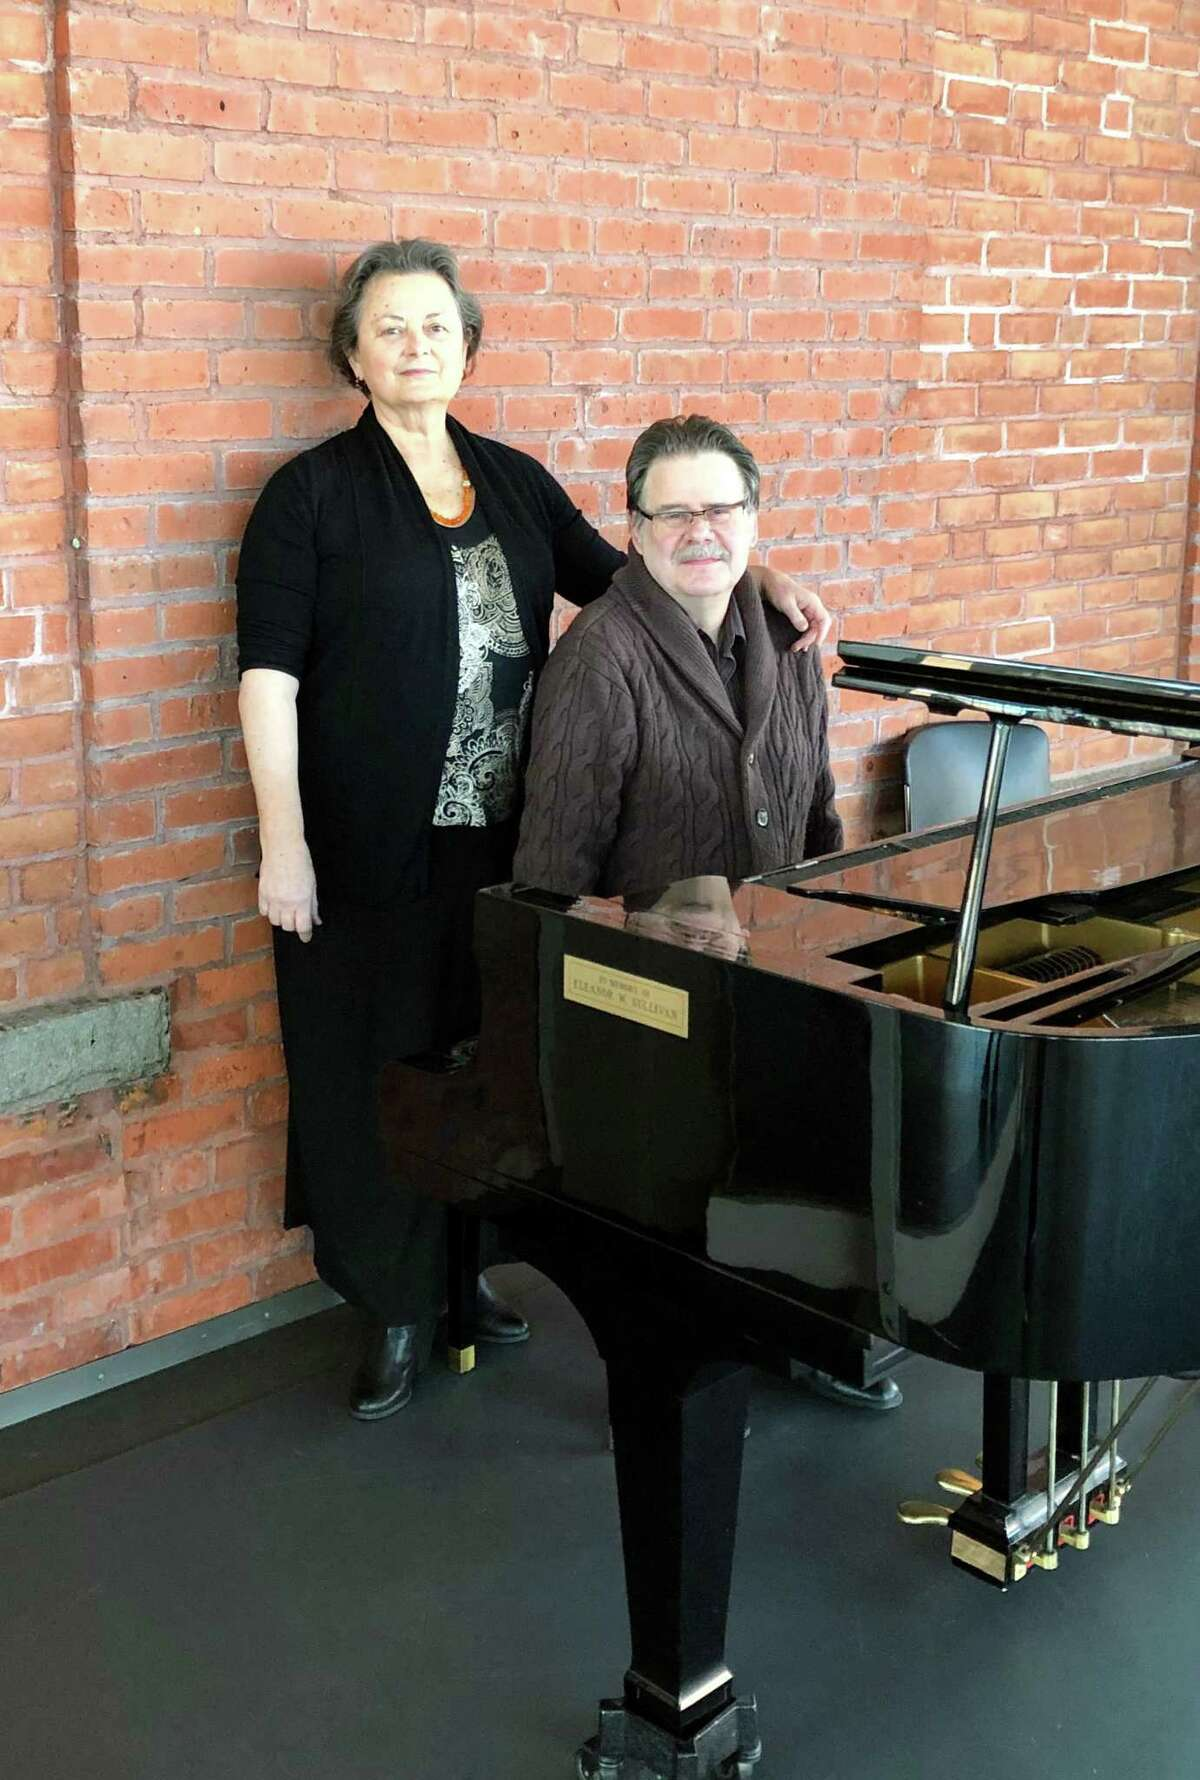 Denise Warner Limoli and Michael Limoli pose at a studio piano at the Nutmeg Conservatory for the Arts.